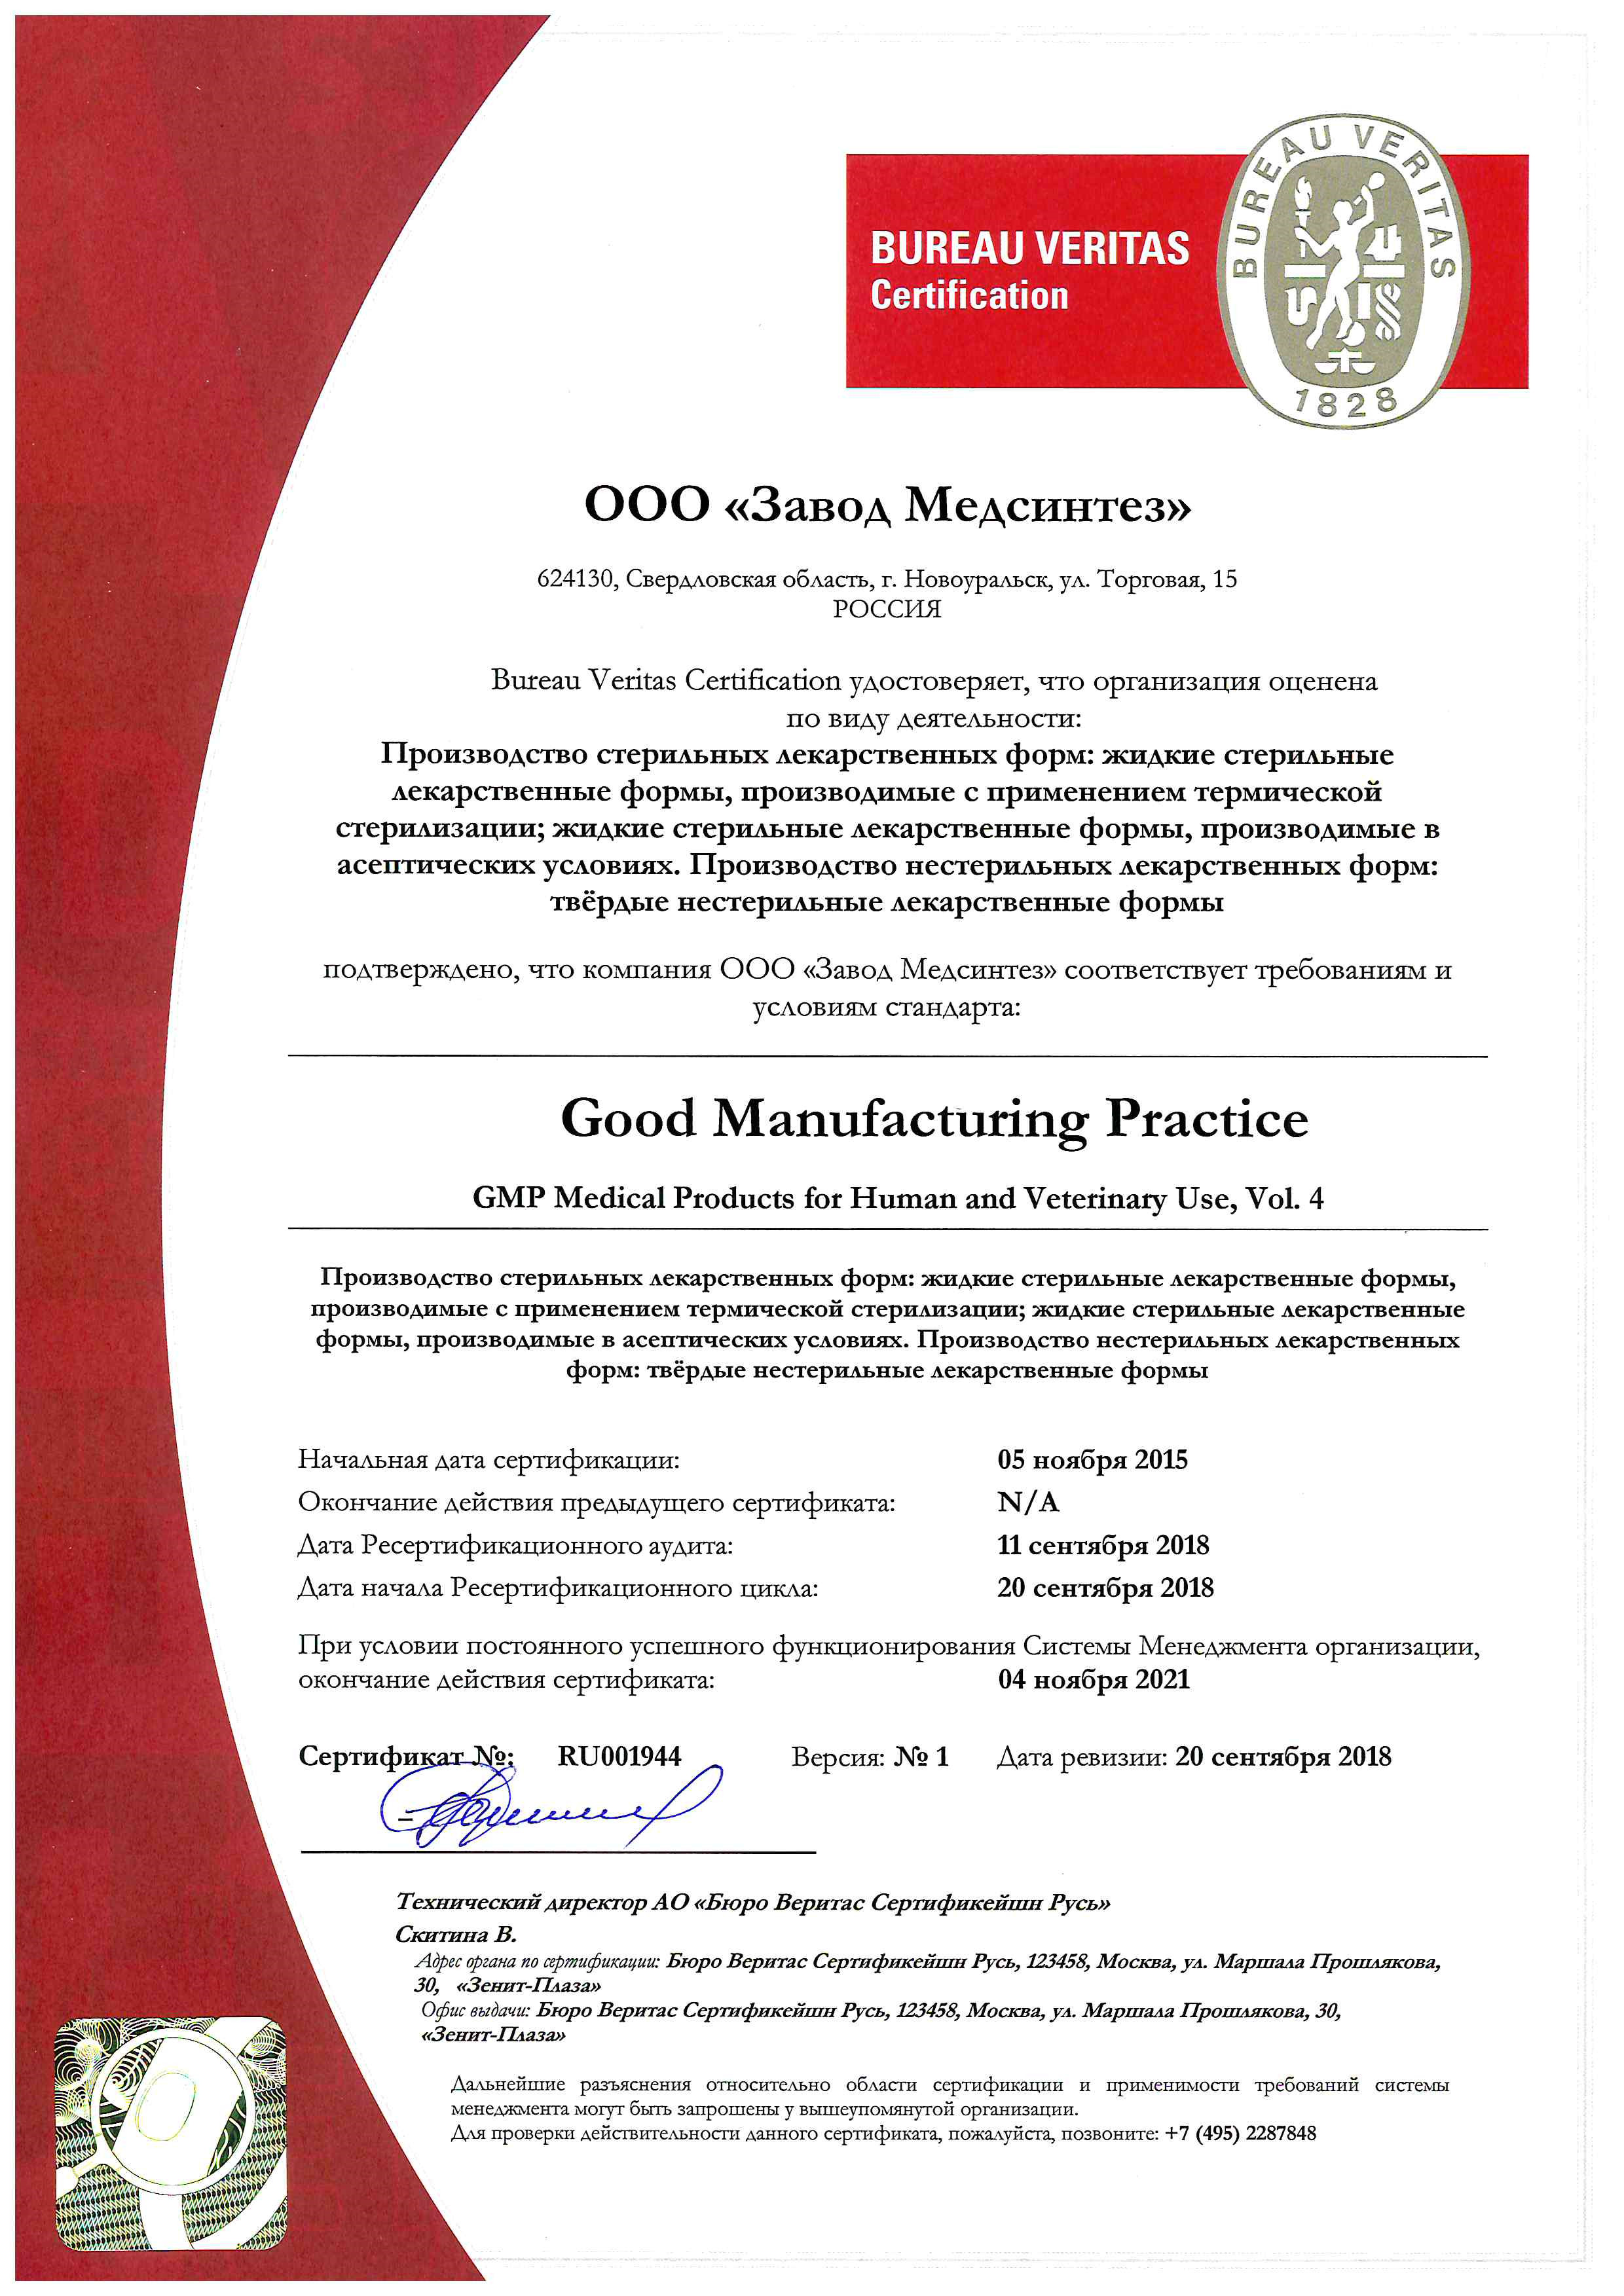 Certificate of GMP Medical Products for Human and Veterinary Use compliance (certification body: BUREAU VERITAS)